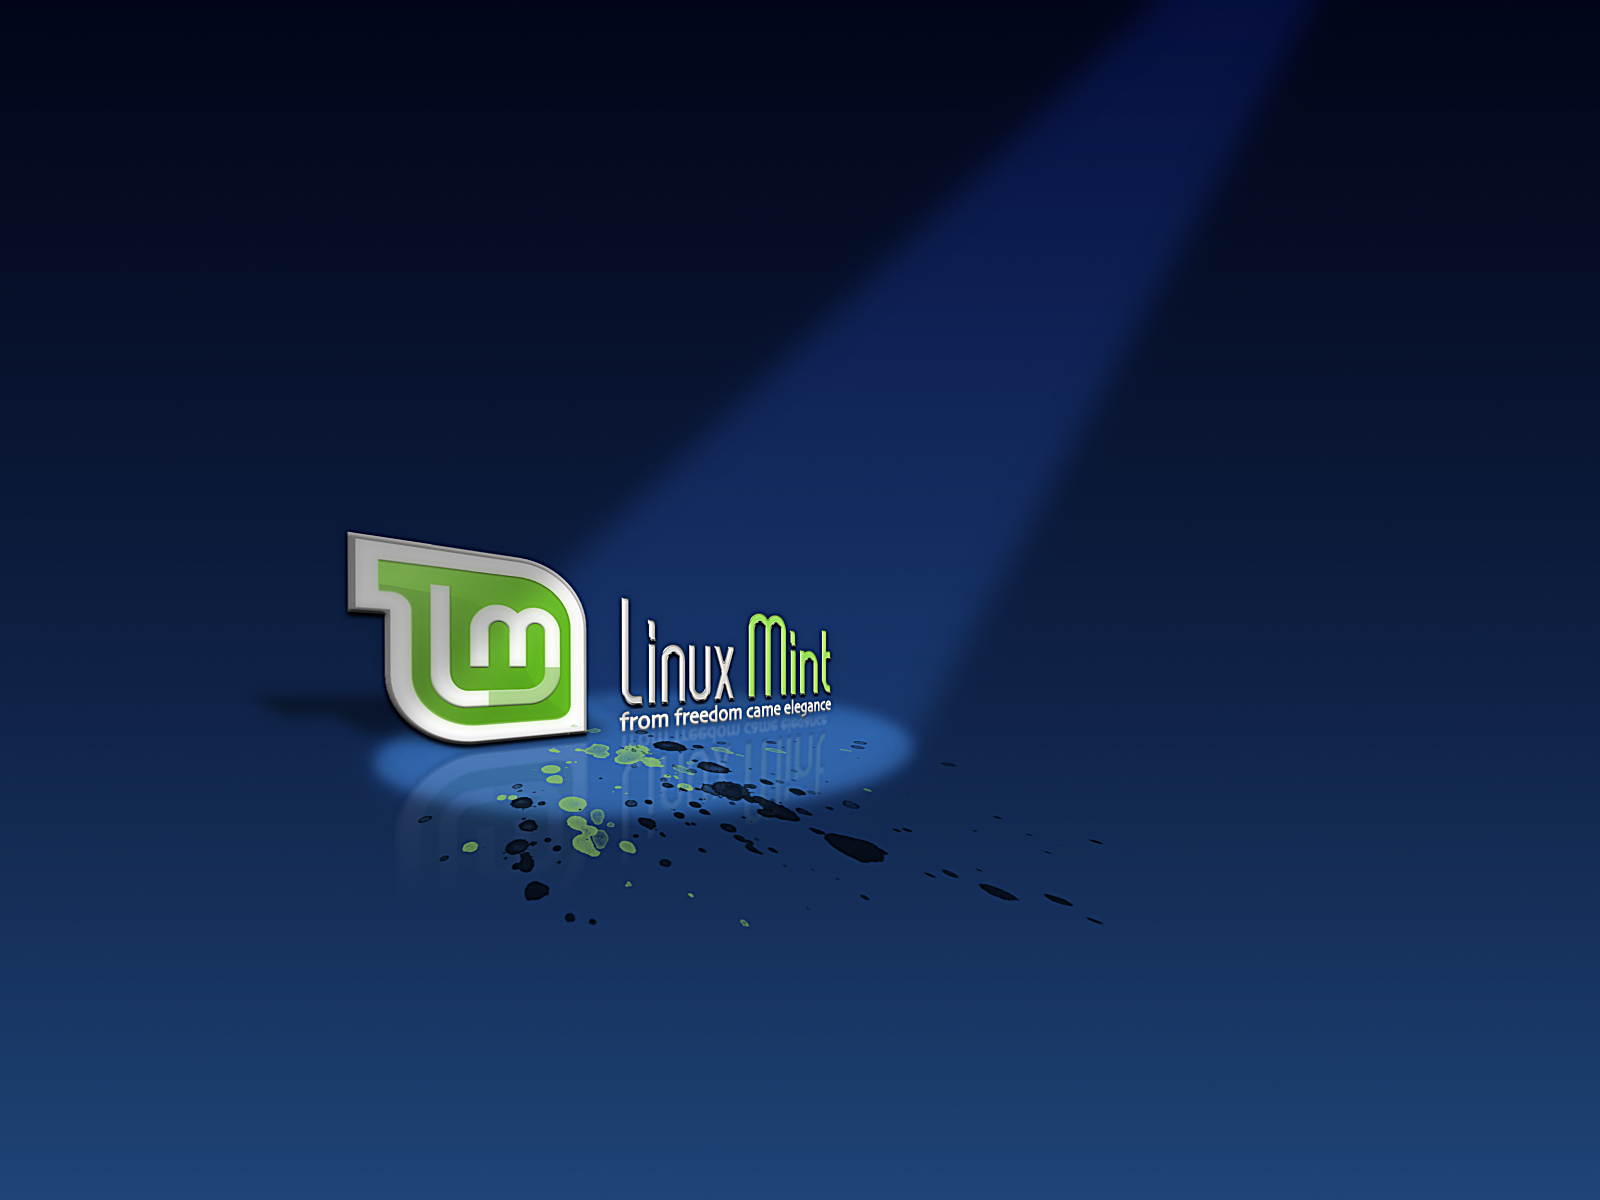 Pclinuxos Best Linux Mint 982987 With Resolutions 16001200 Pixel 1600x1200